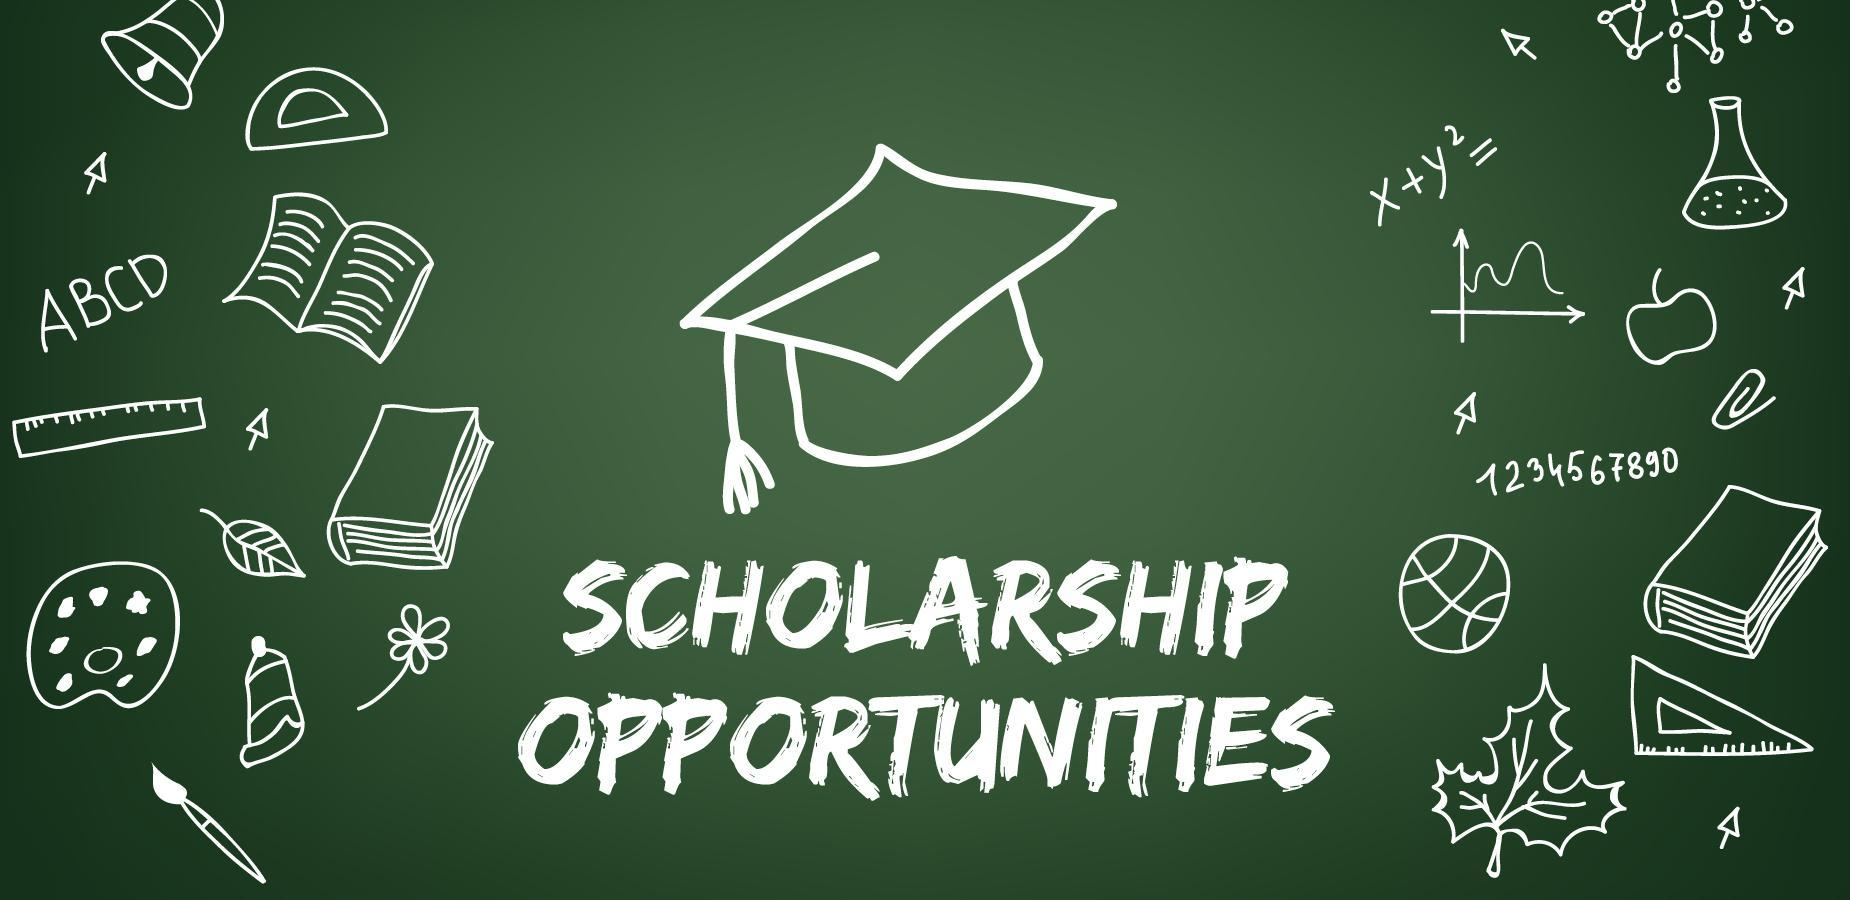 Scholarship page on PUSD